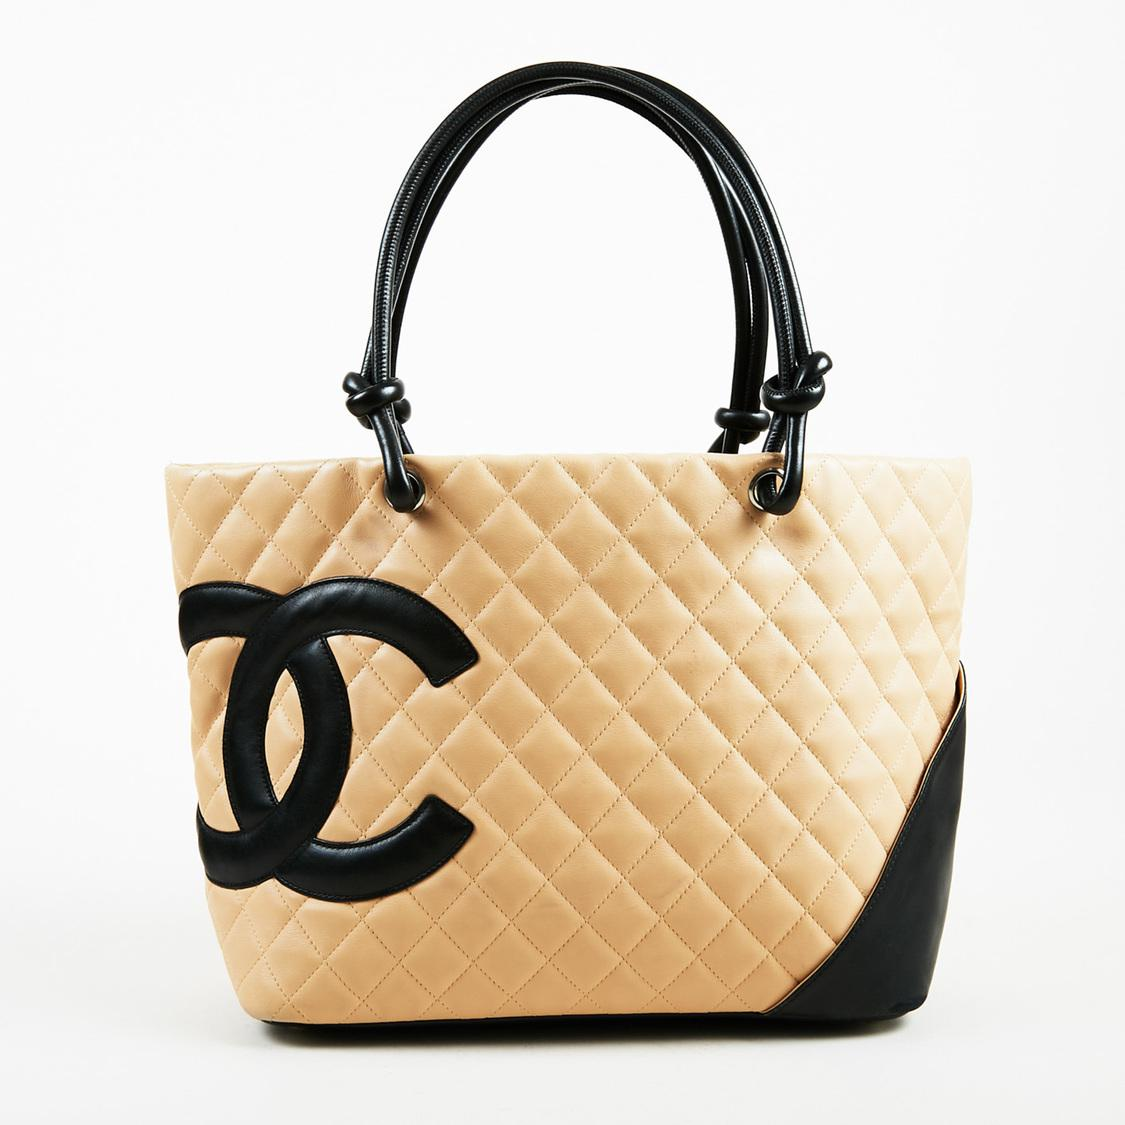 8cfba2f5dcce Chanel Beige Black Quilted Calfskin Leather